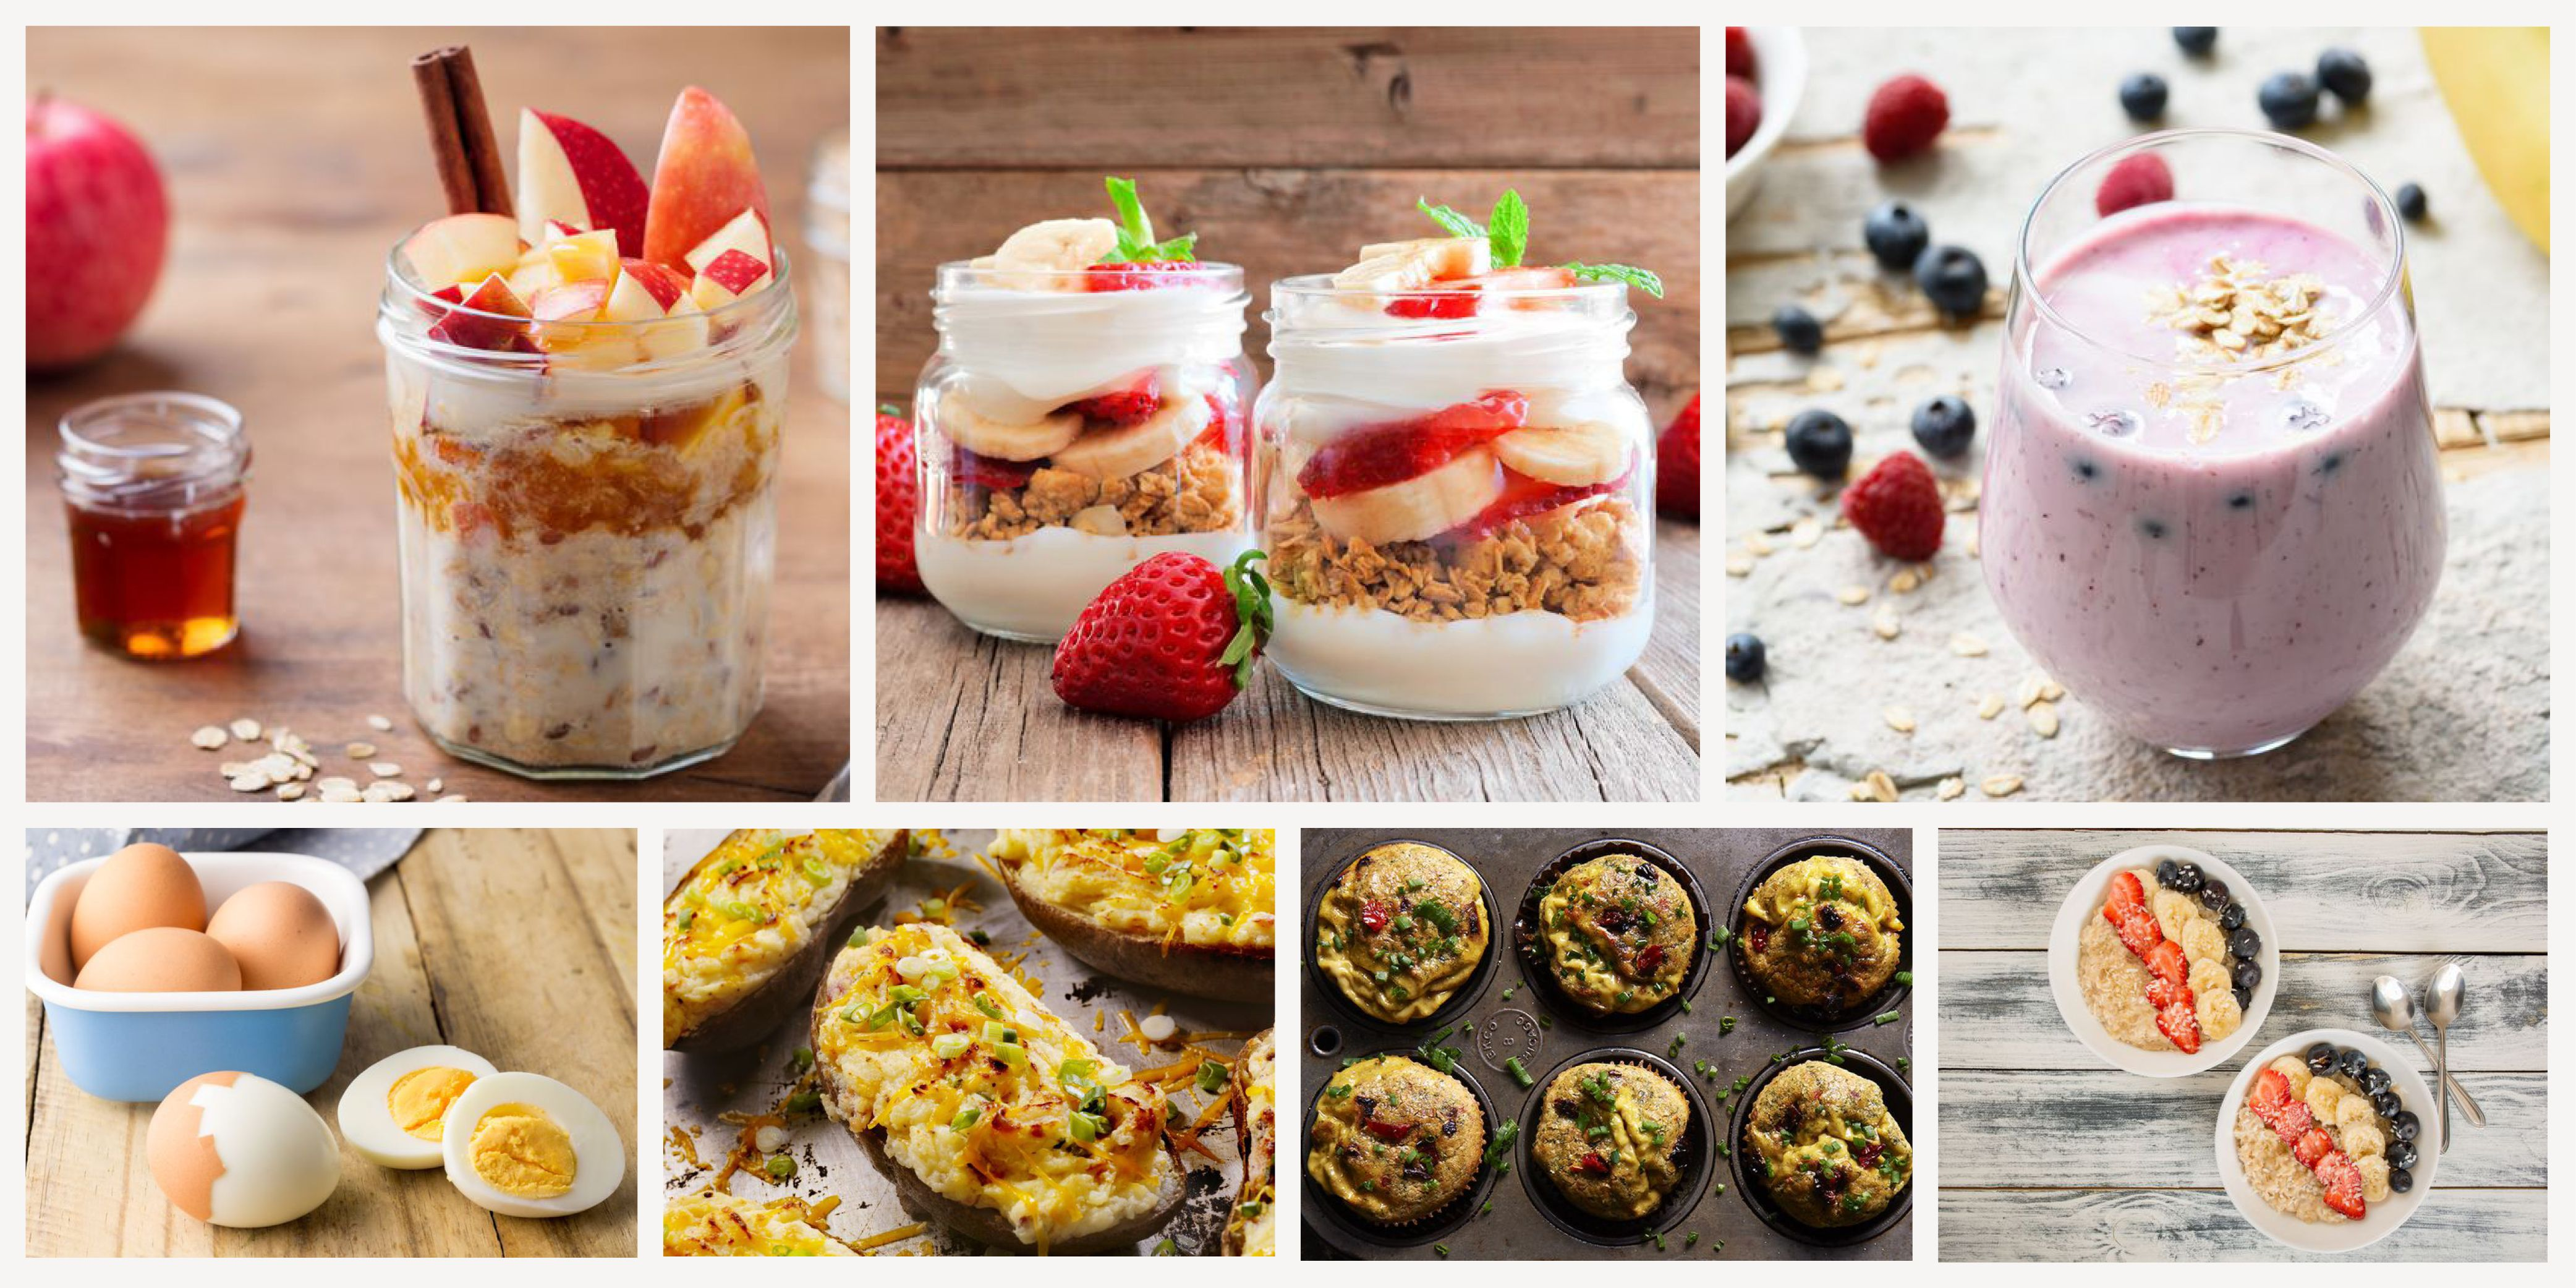 Quick Breakfast Ideas For Runners Healthy Grocery List